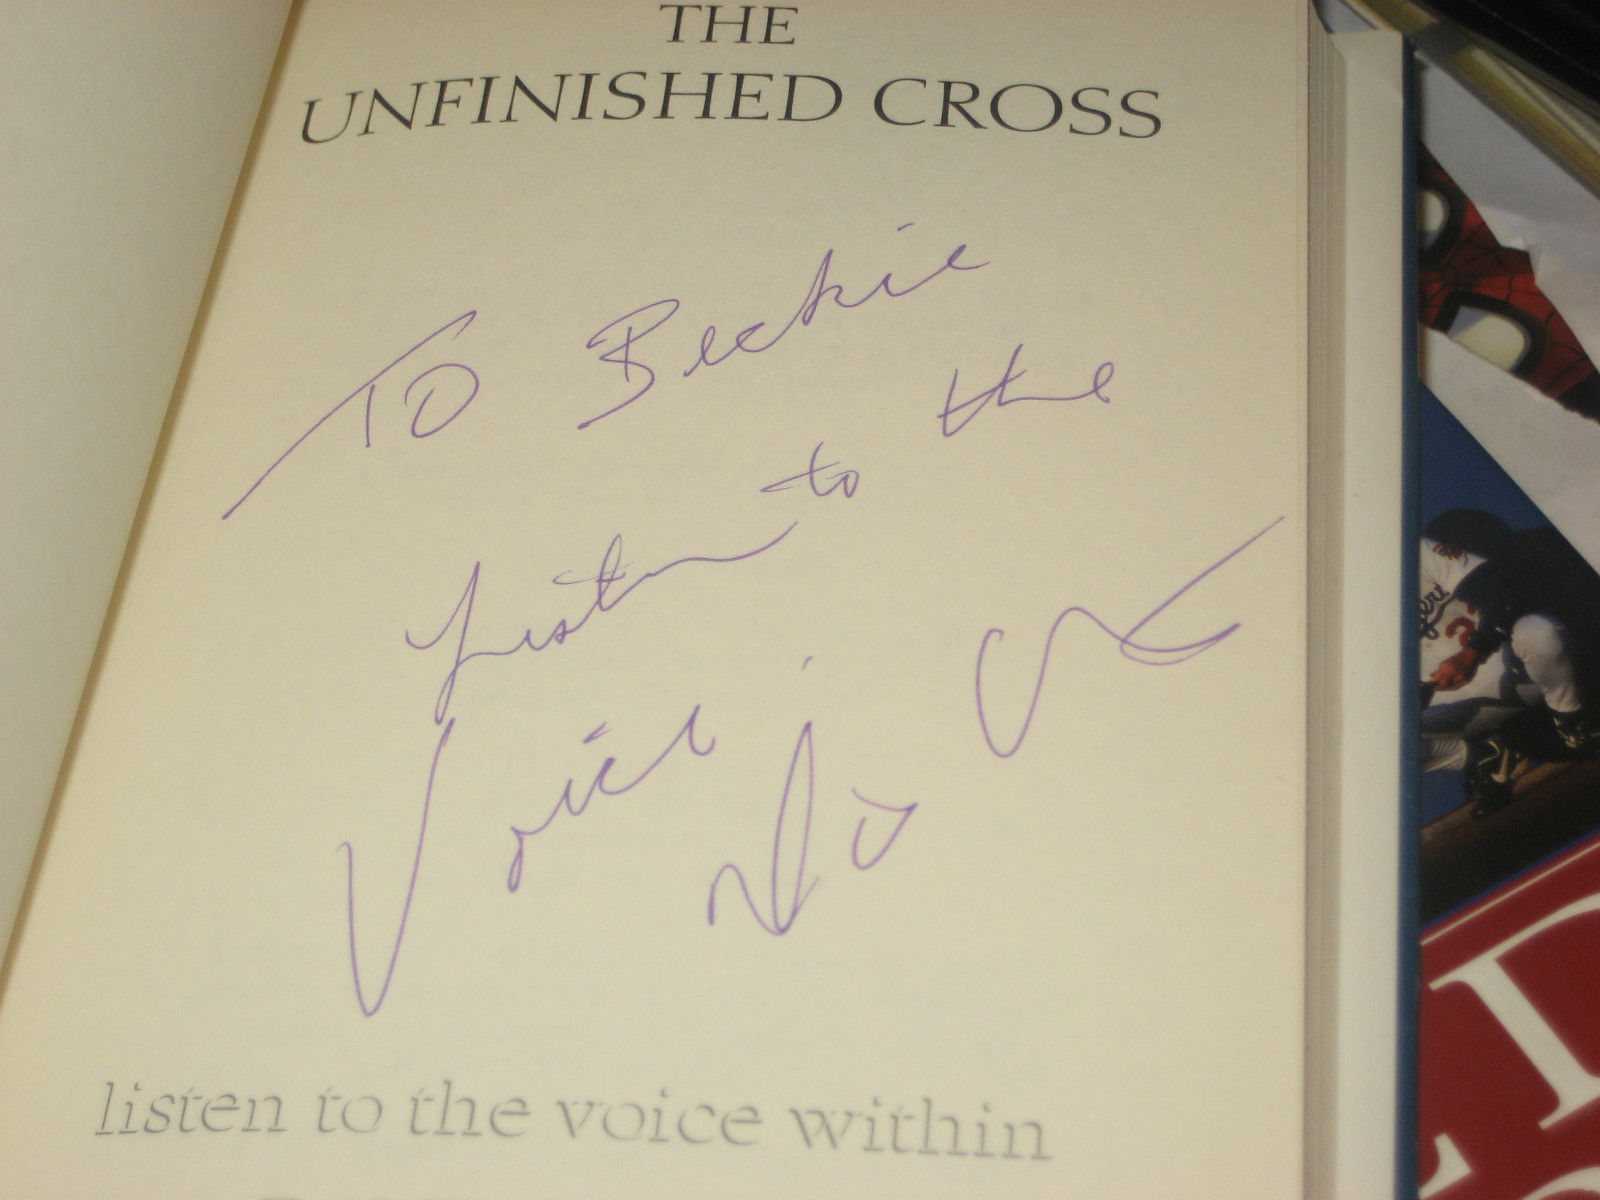 The Unfinished Cross: Listen to the Voice Within SIGNED by Dave Austin